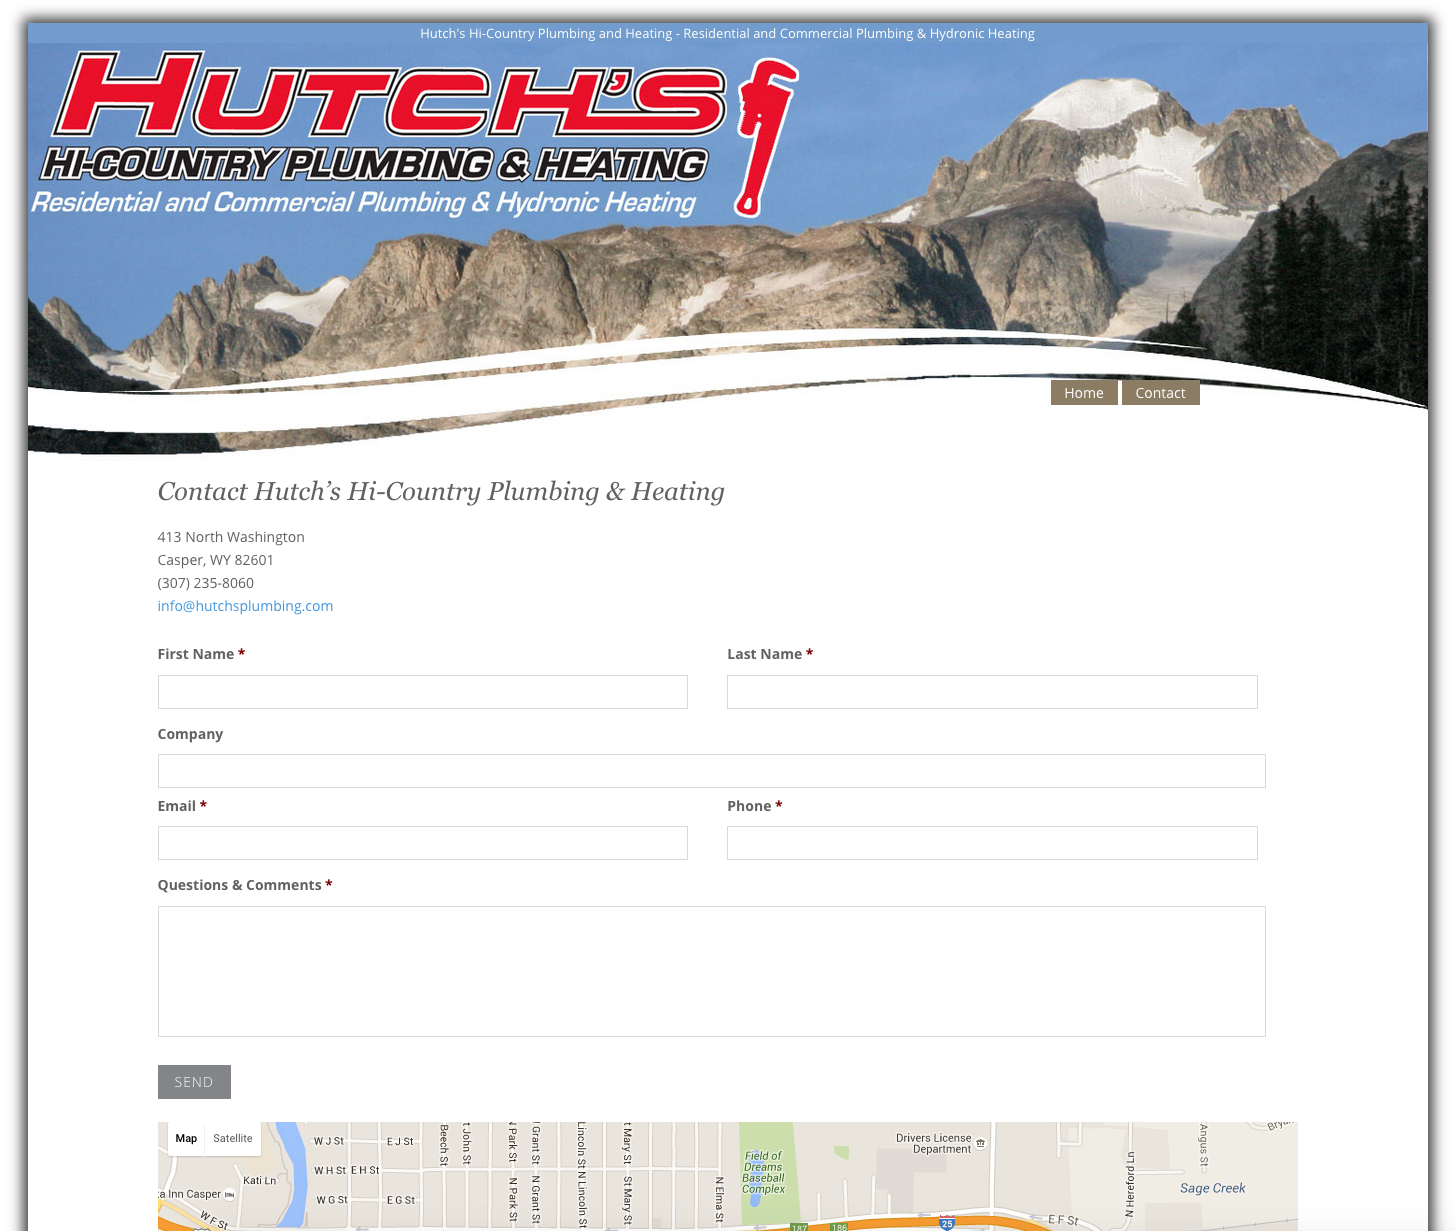 Hutch's Hi-Country Plumbing & Heating